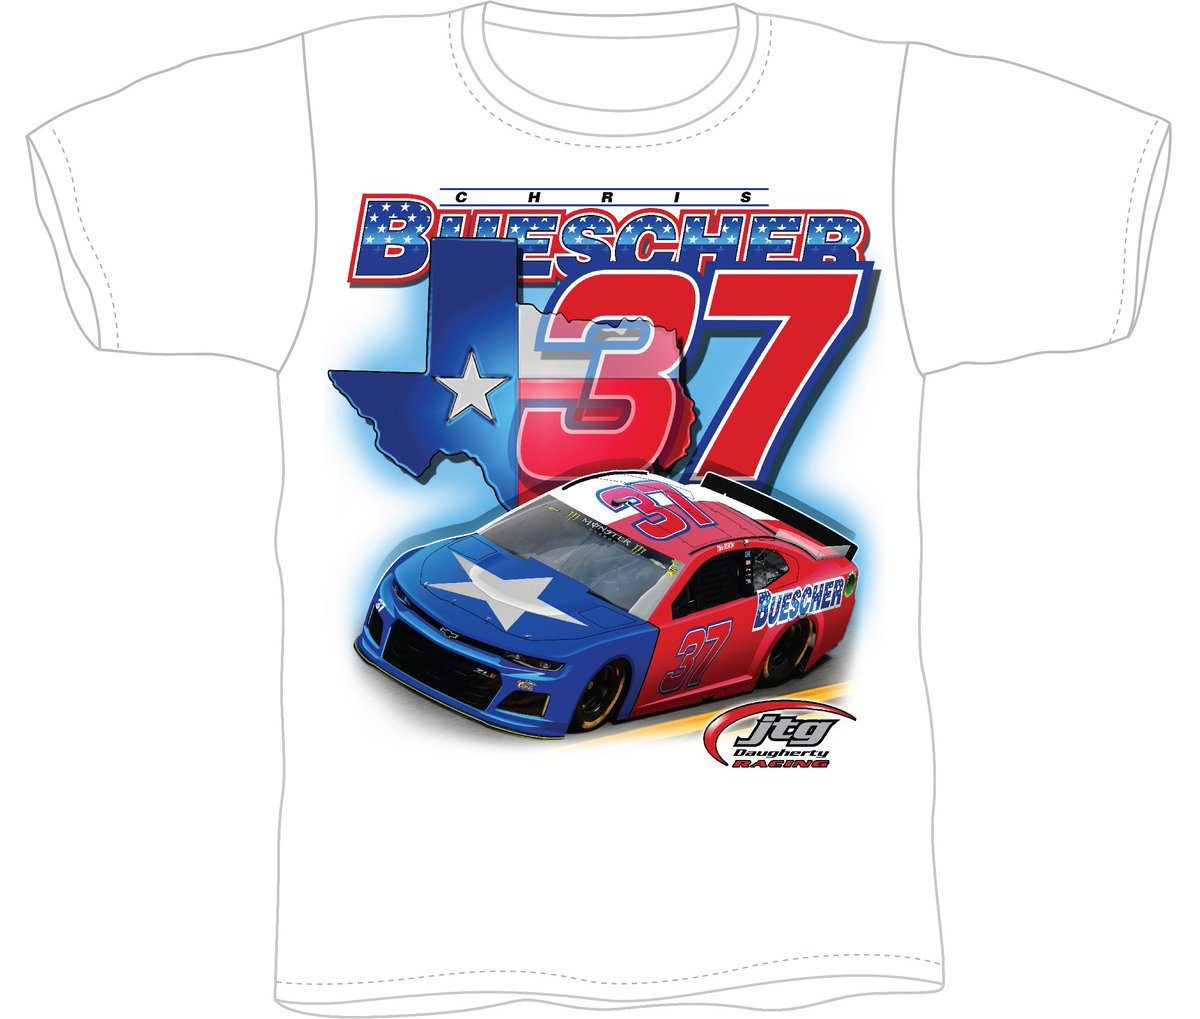 We love our hometown driver @Chris_Buescher! Get a ticket to the #AAATexas500, access to an exclusive meet & greet with Chris before the race, and this limited edition shirt for $79! Offer expires Oct 21! » bit.ly/BuescherTX